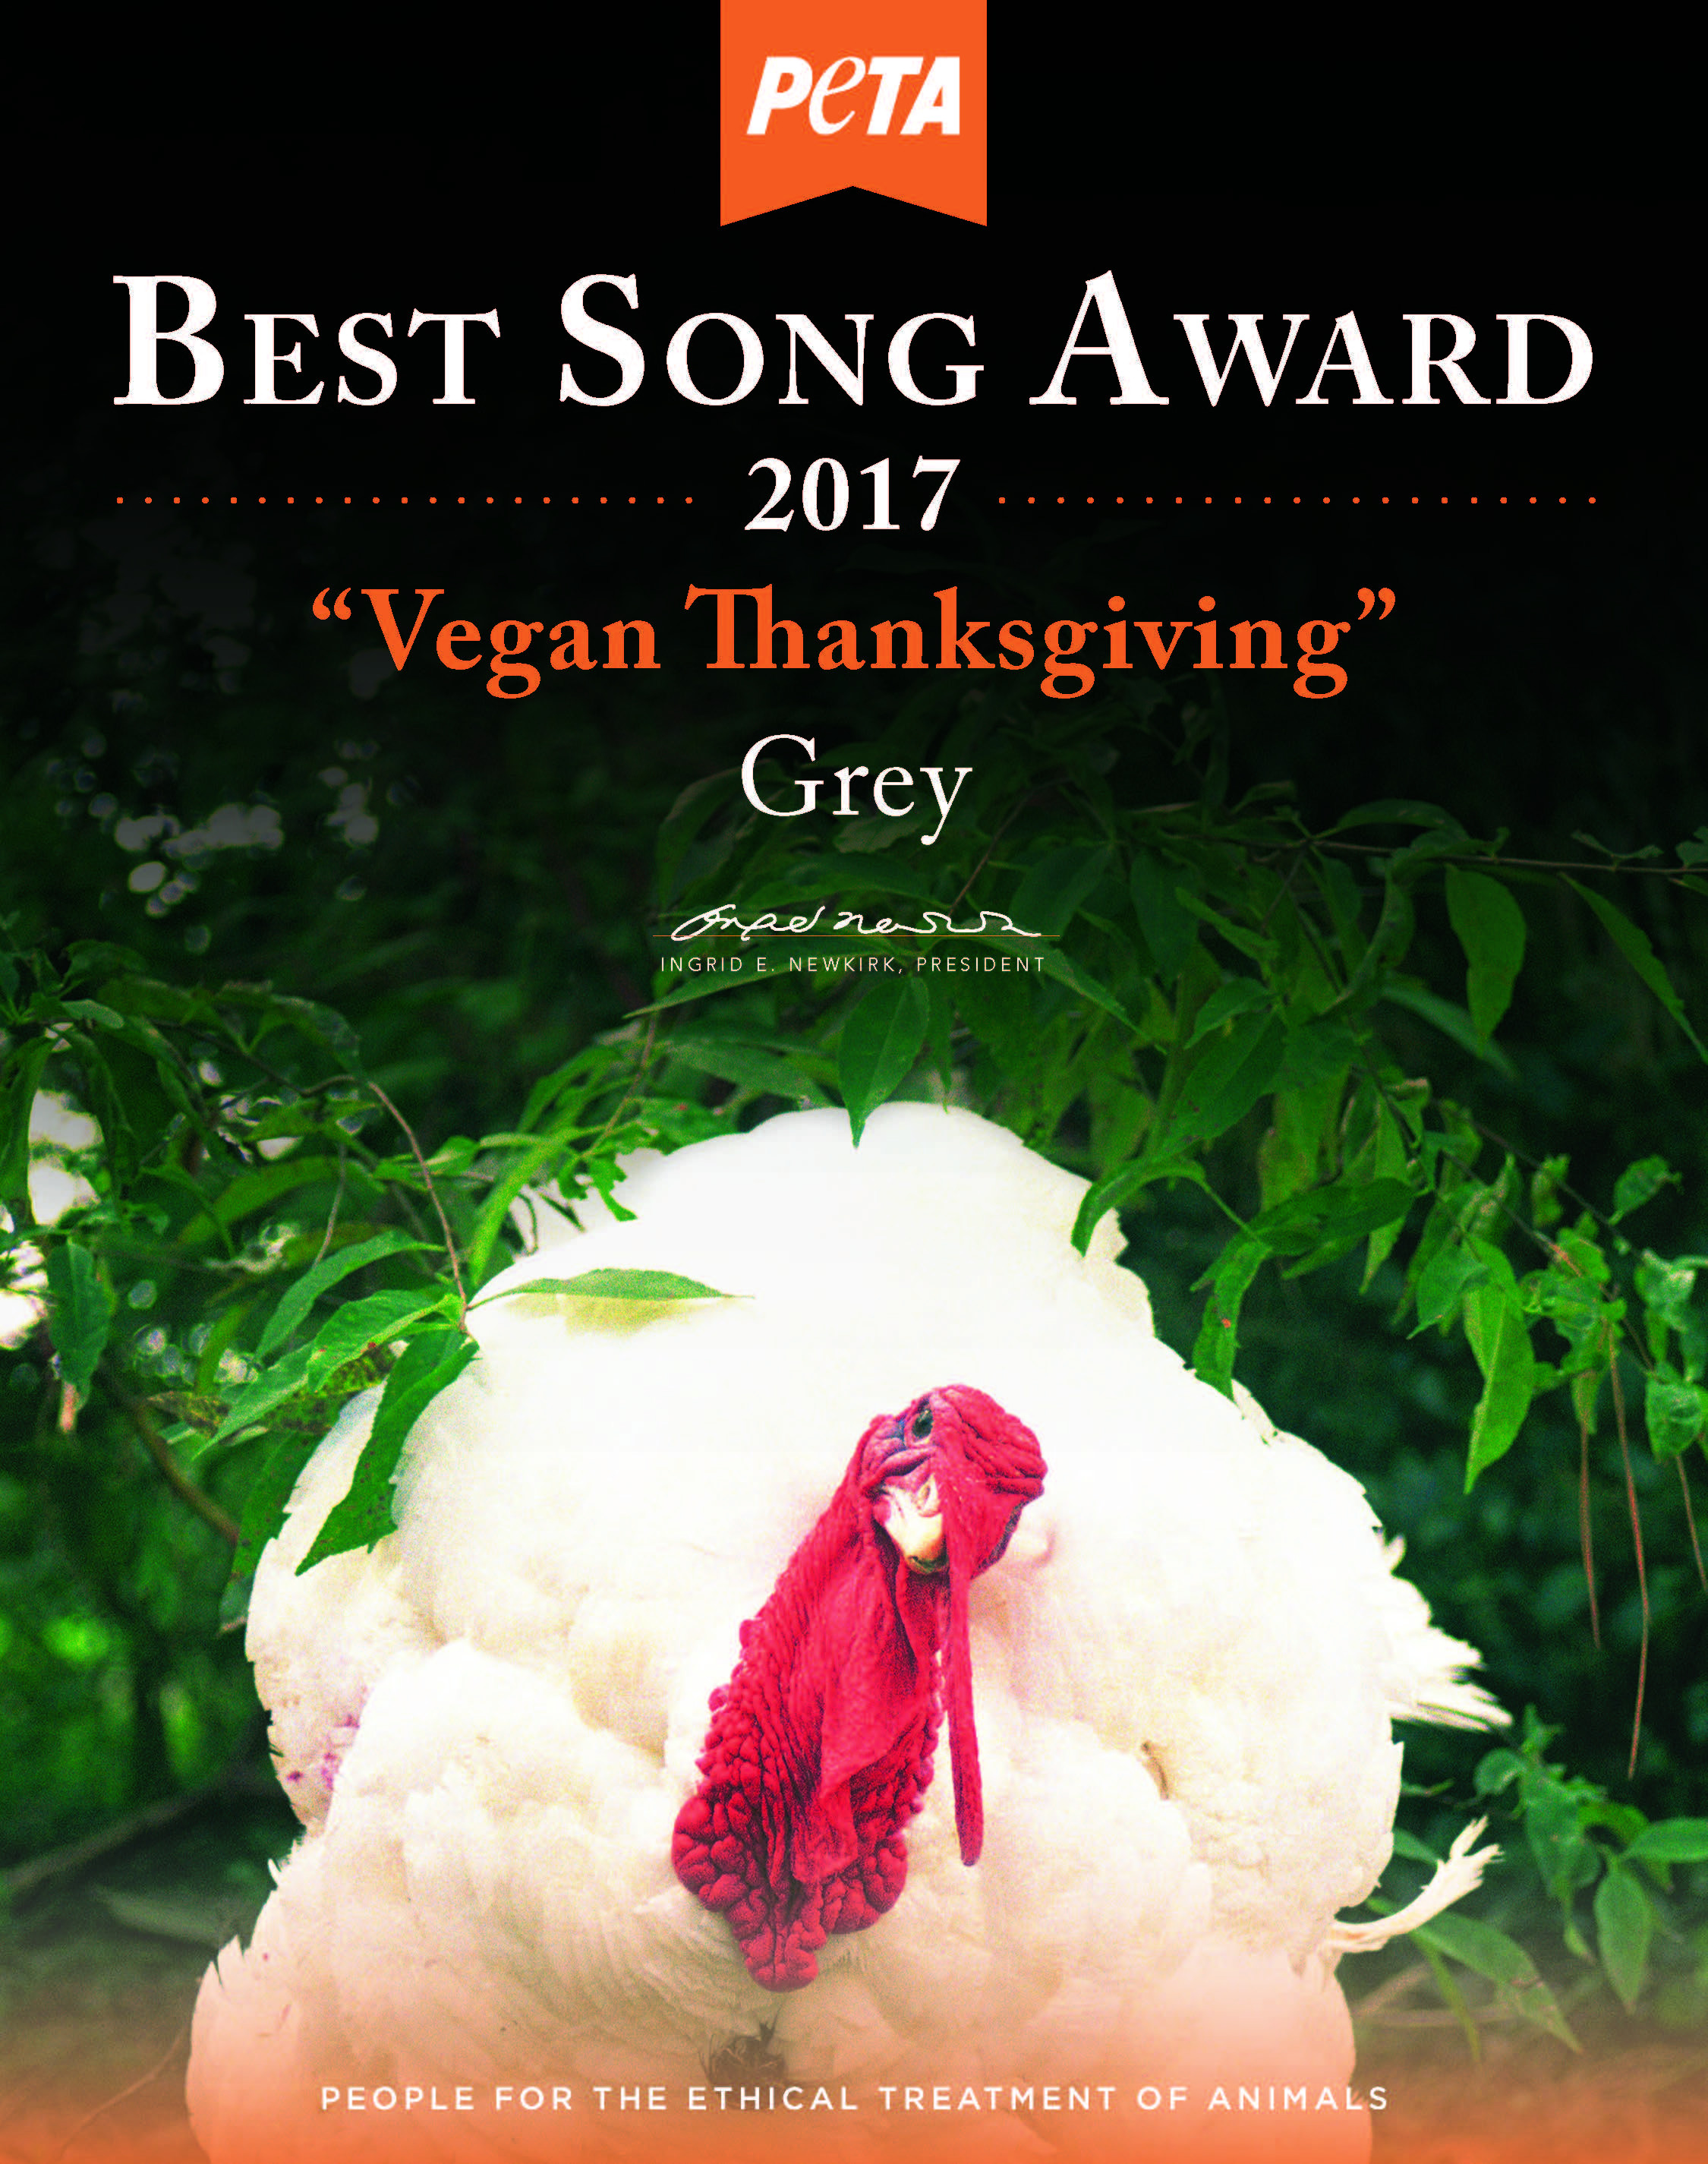 Vegan Thanksgiving Song  Grey Celebrates Vegan Thanksgiving at Sublime With PETA